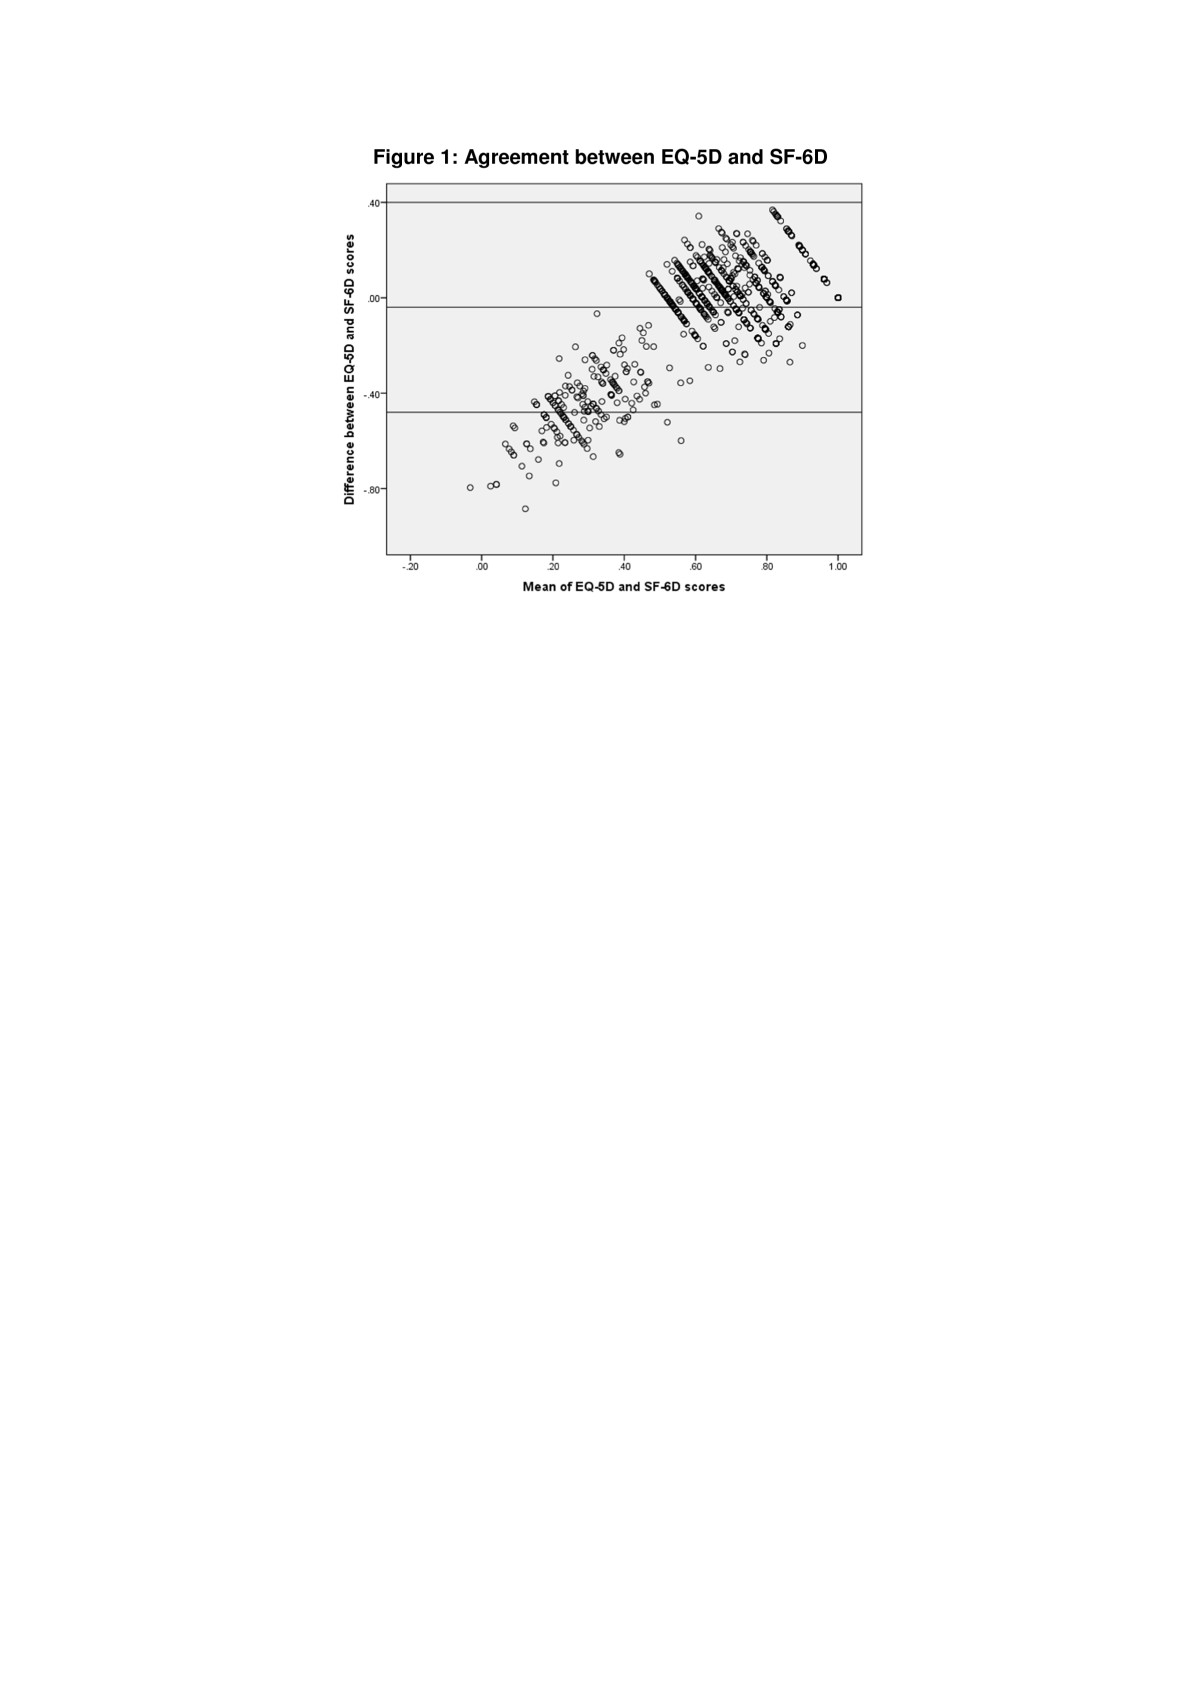 http://static-content.springer.com/image/art%3A10.1186%2F1477-7525-12-42/MediaObjects/12955_2013_Article_1294_Fig1_HTML.jpg